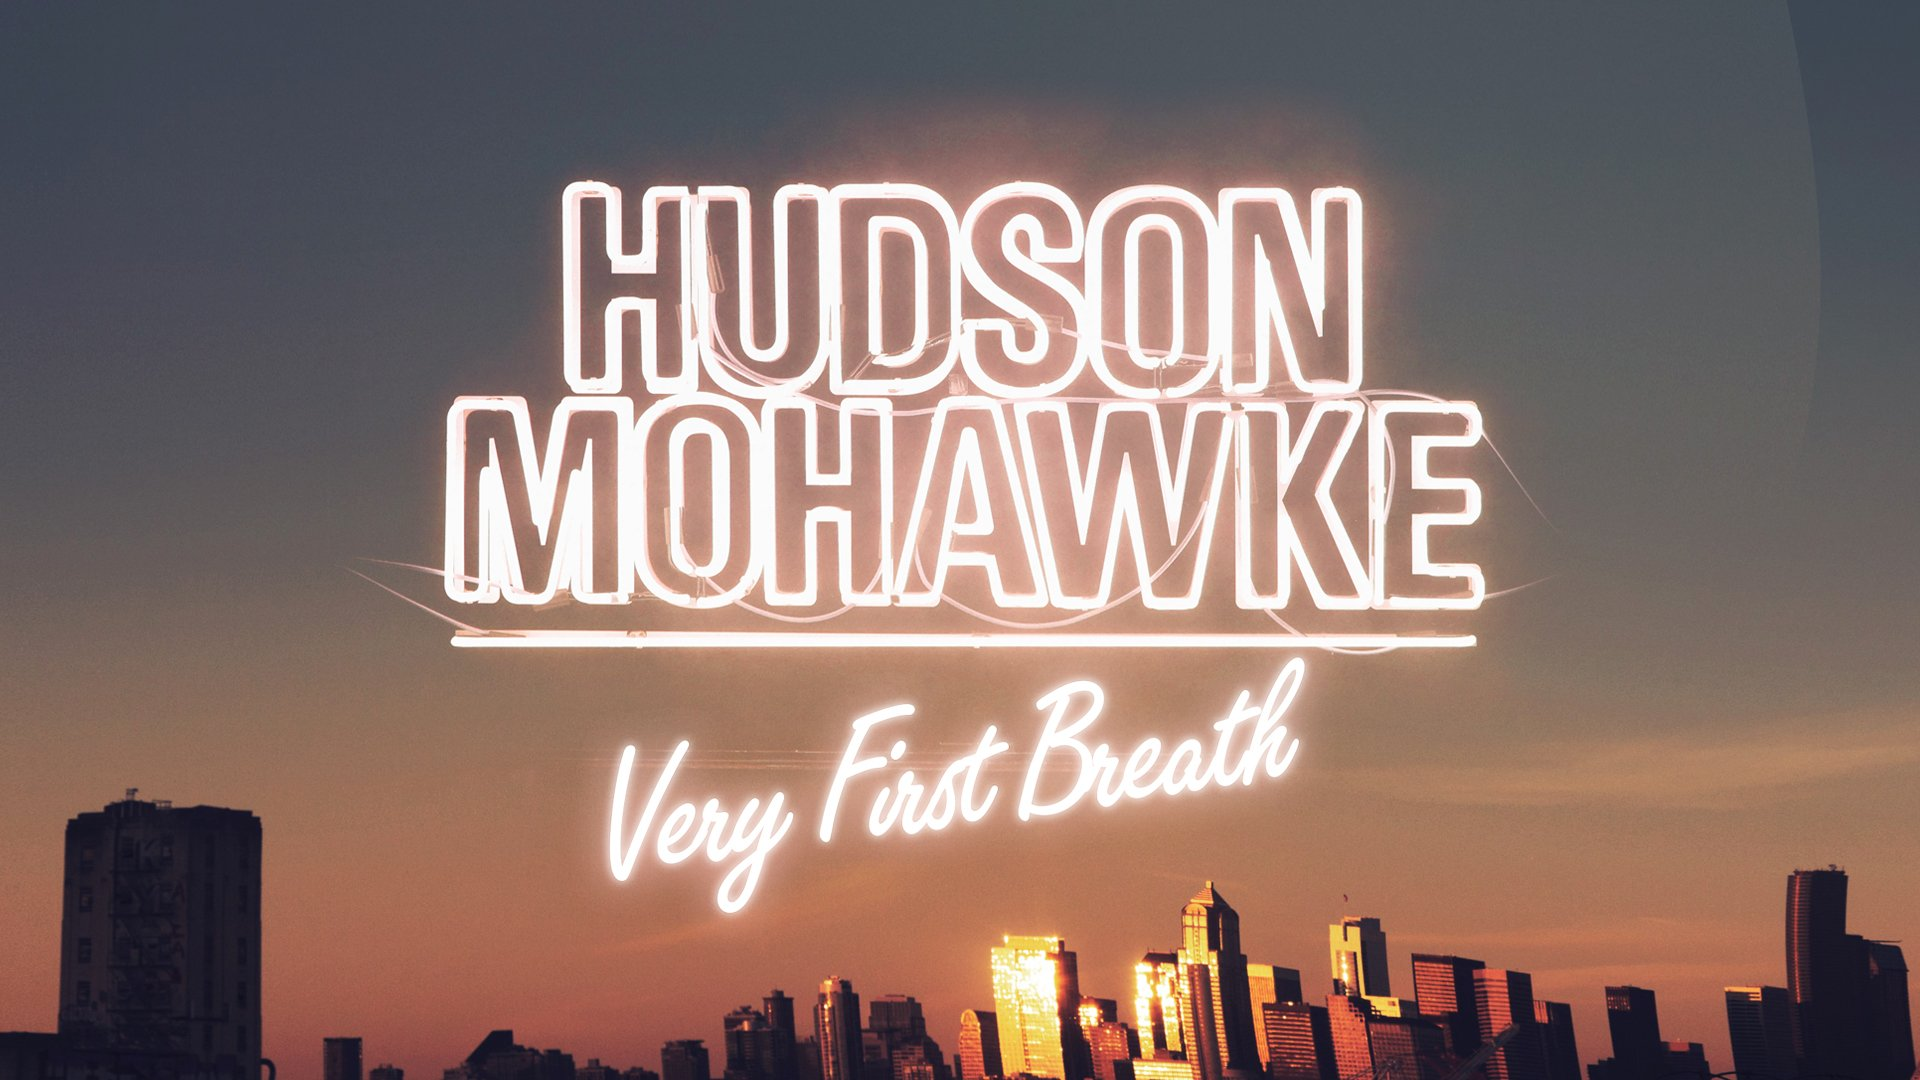 hudson mohawke very first breath